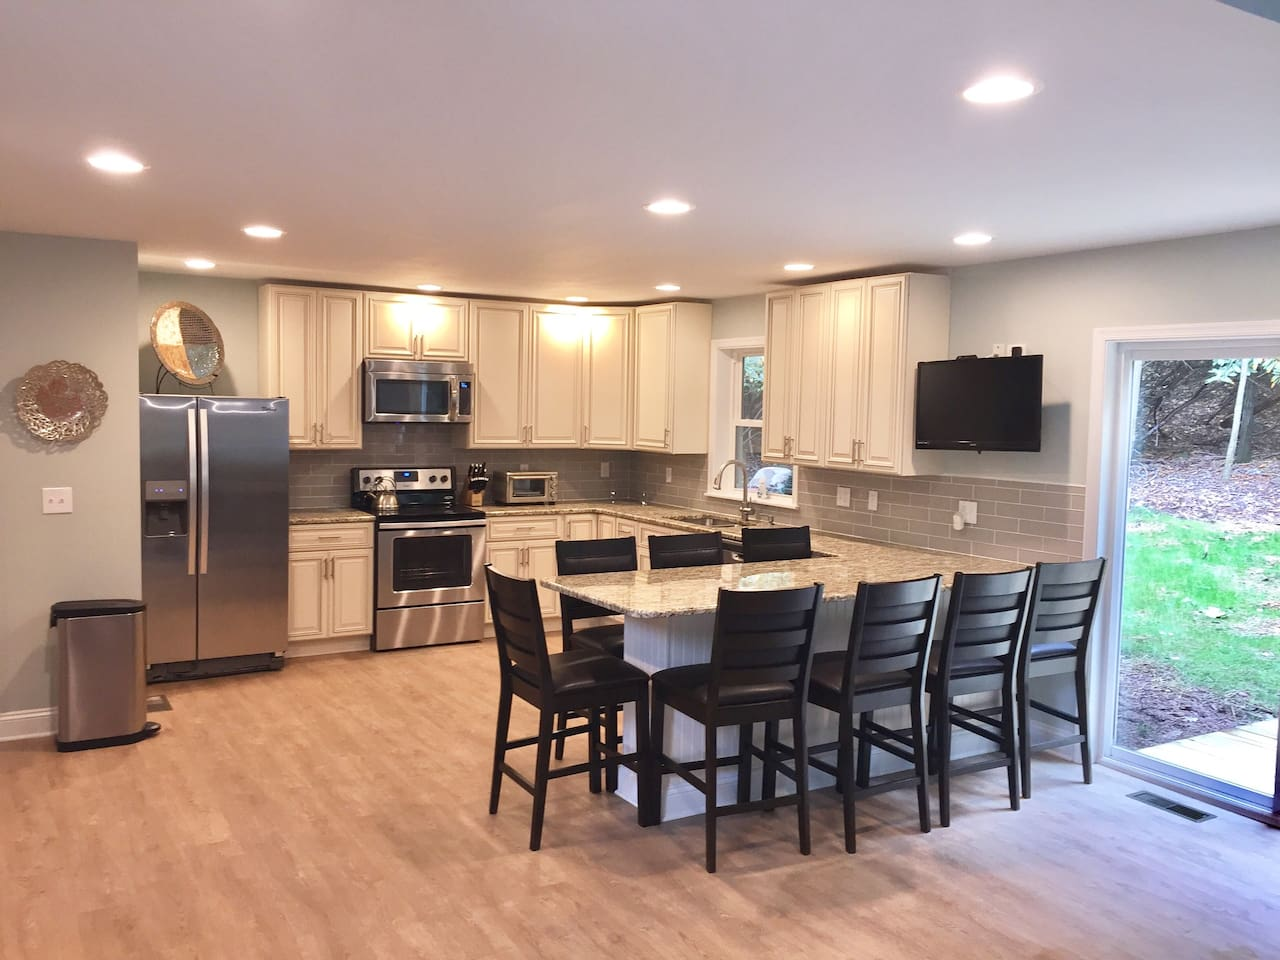 Large Chef's kitchen with Stainless appliances and granite countertops